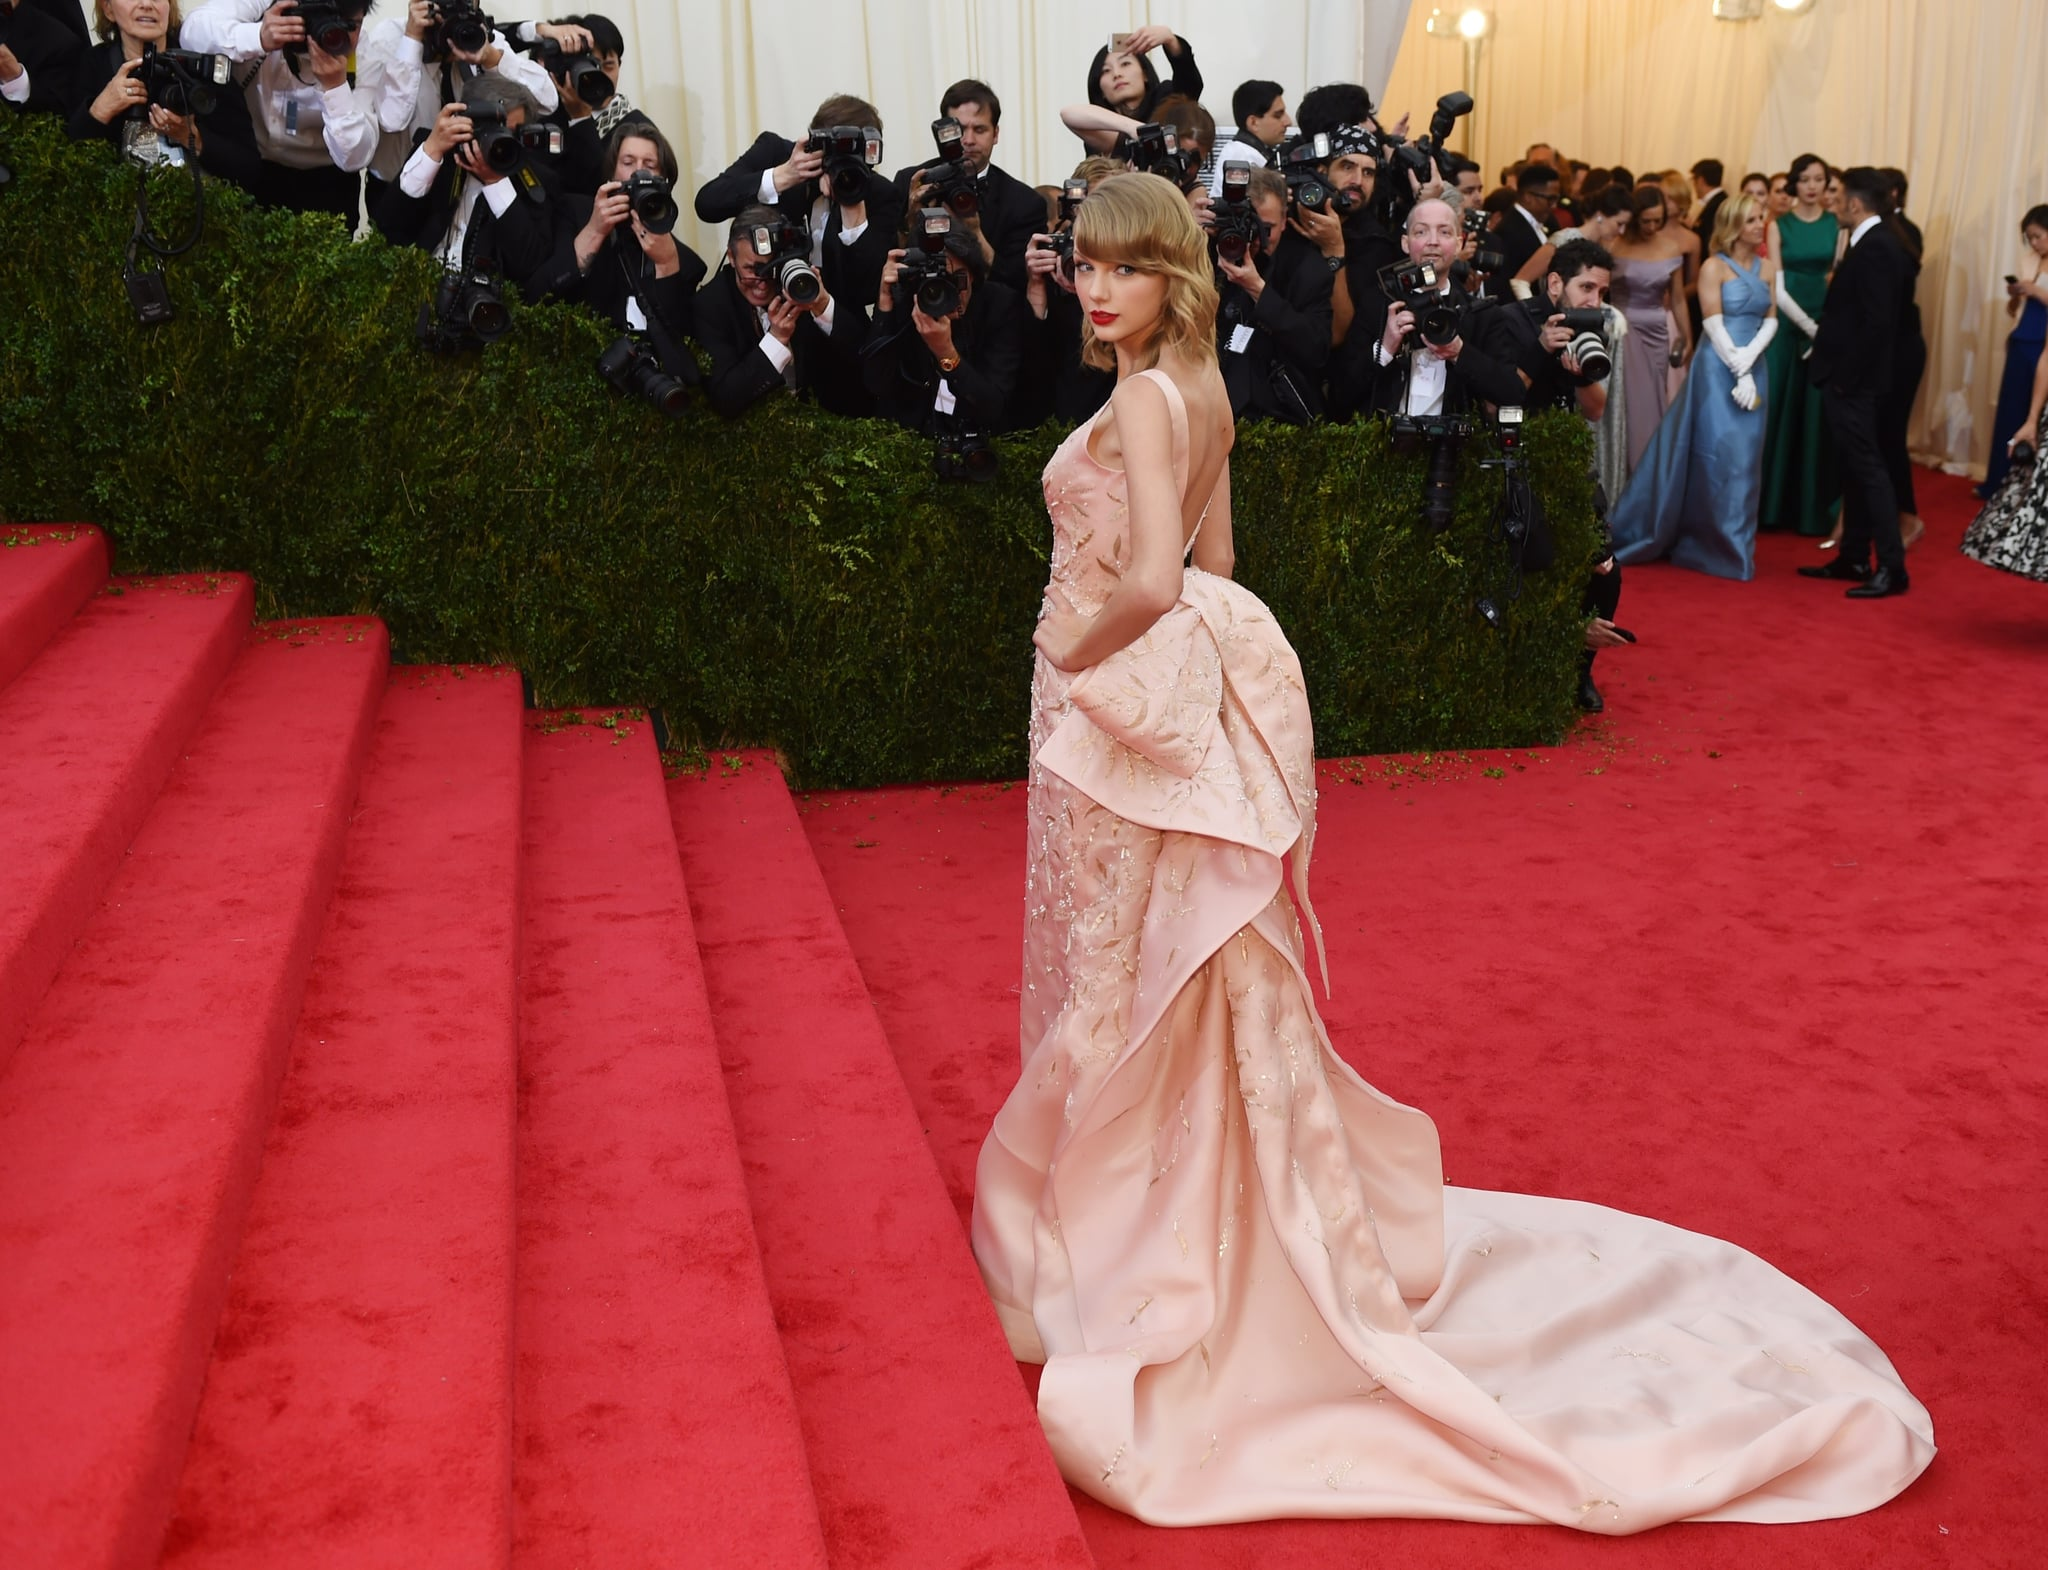 Taylor Swift got ready to make her ascent.